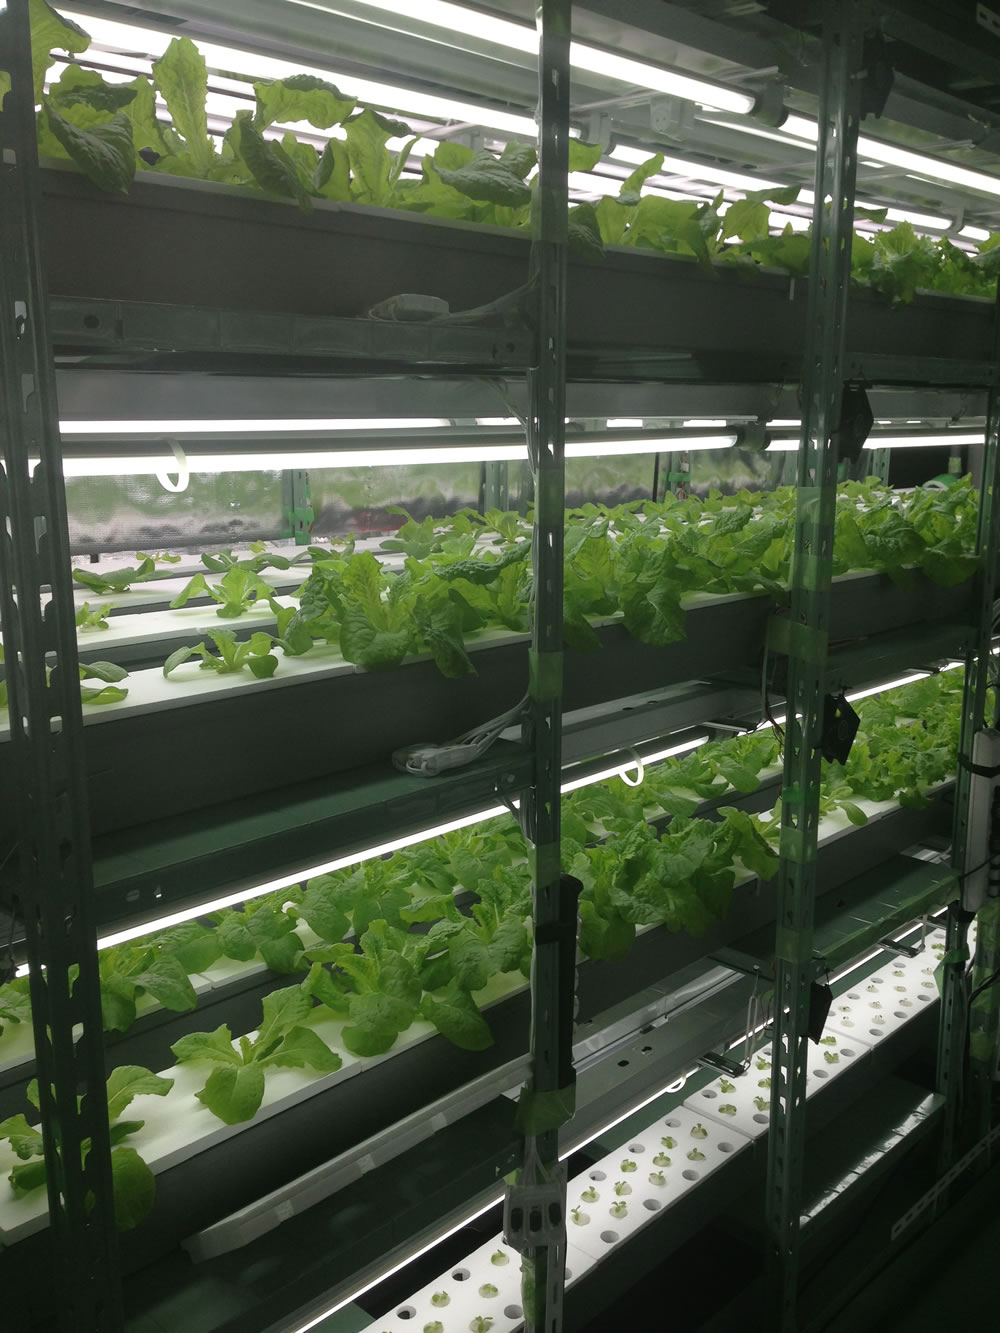 Orca Vision will implement OriginOil's EWS technology in a vertical farming pilot that will include both vegetable and algae production.